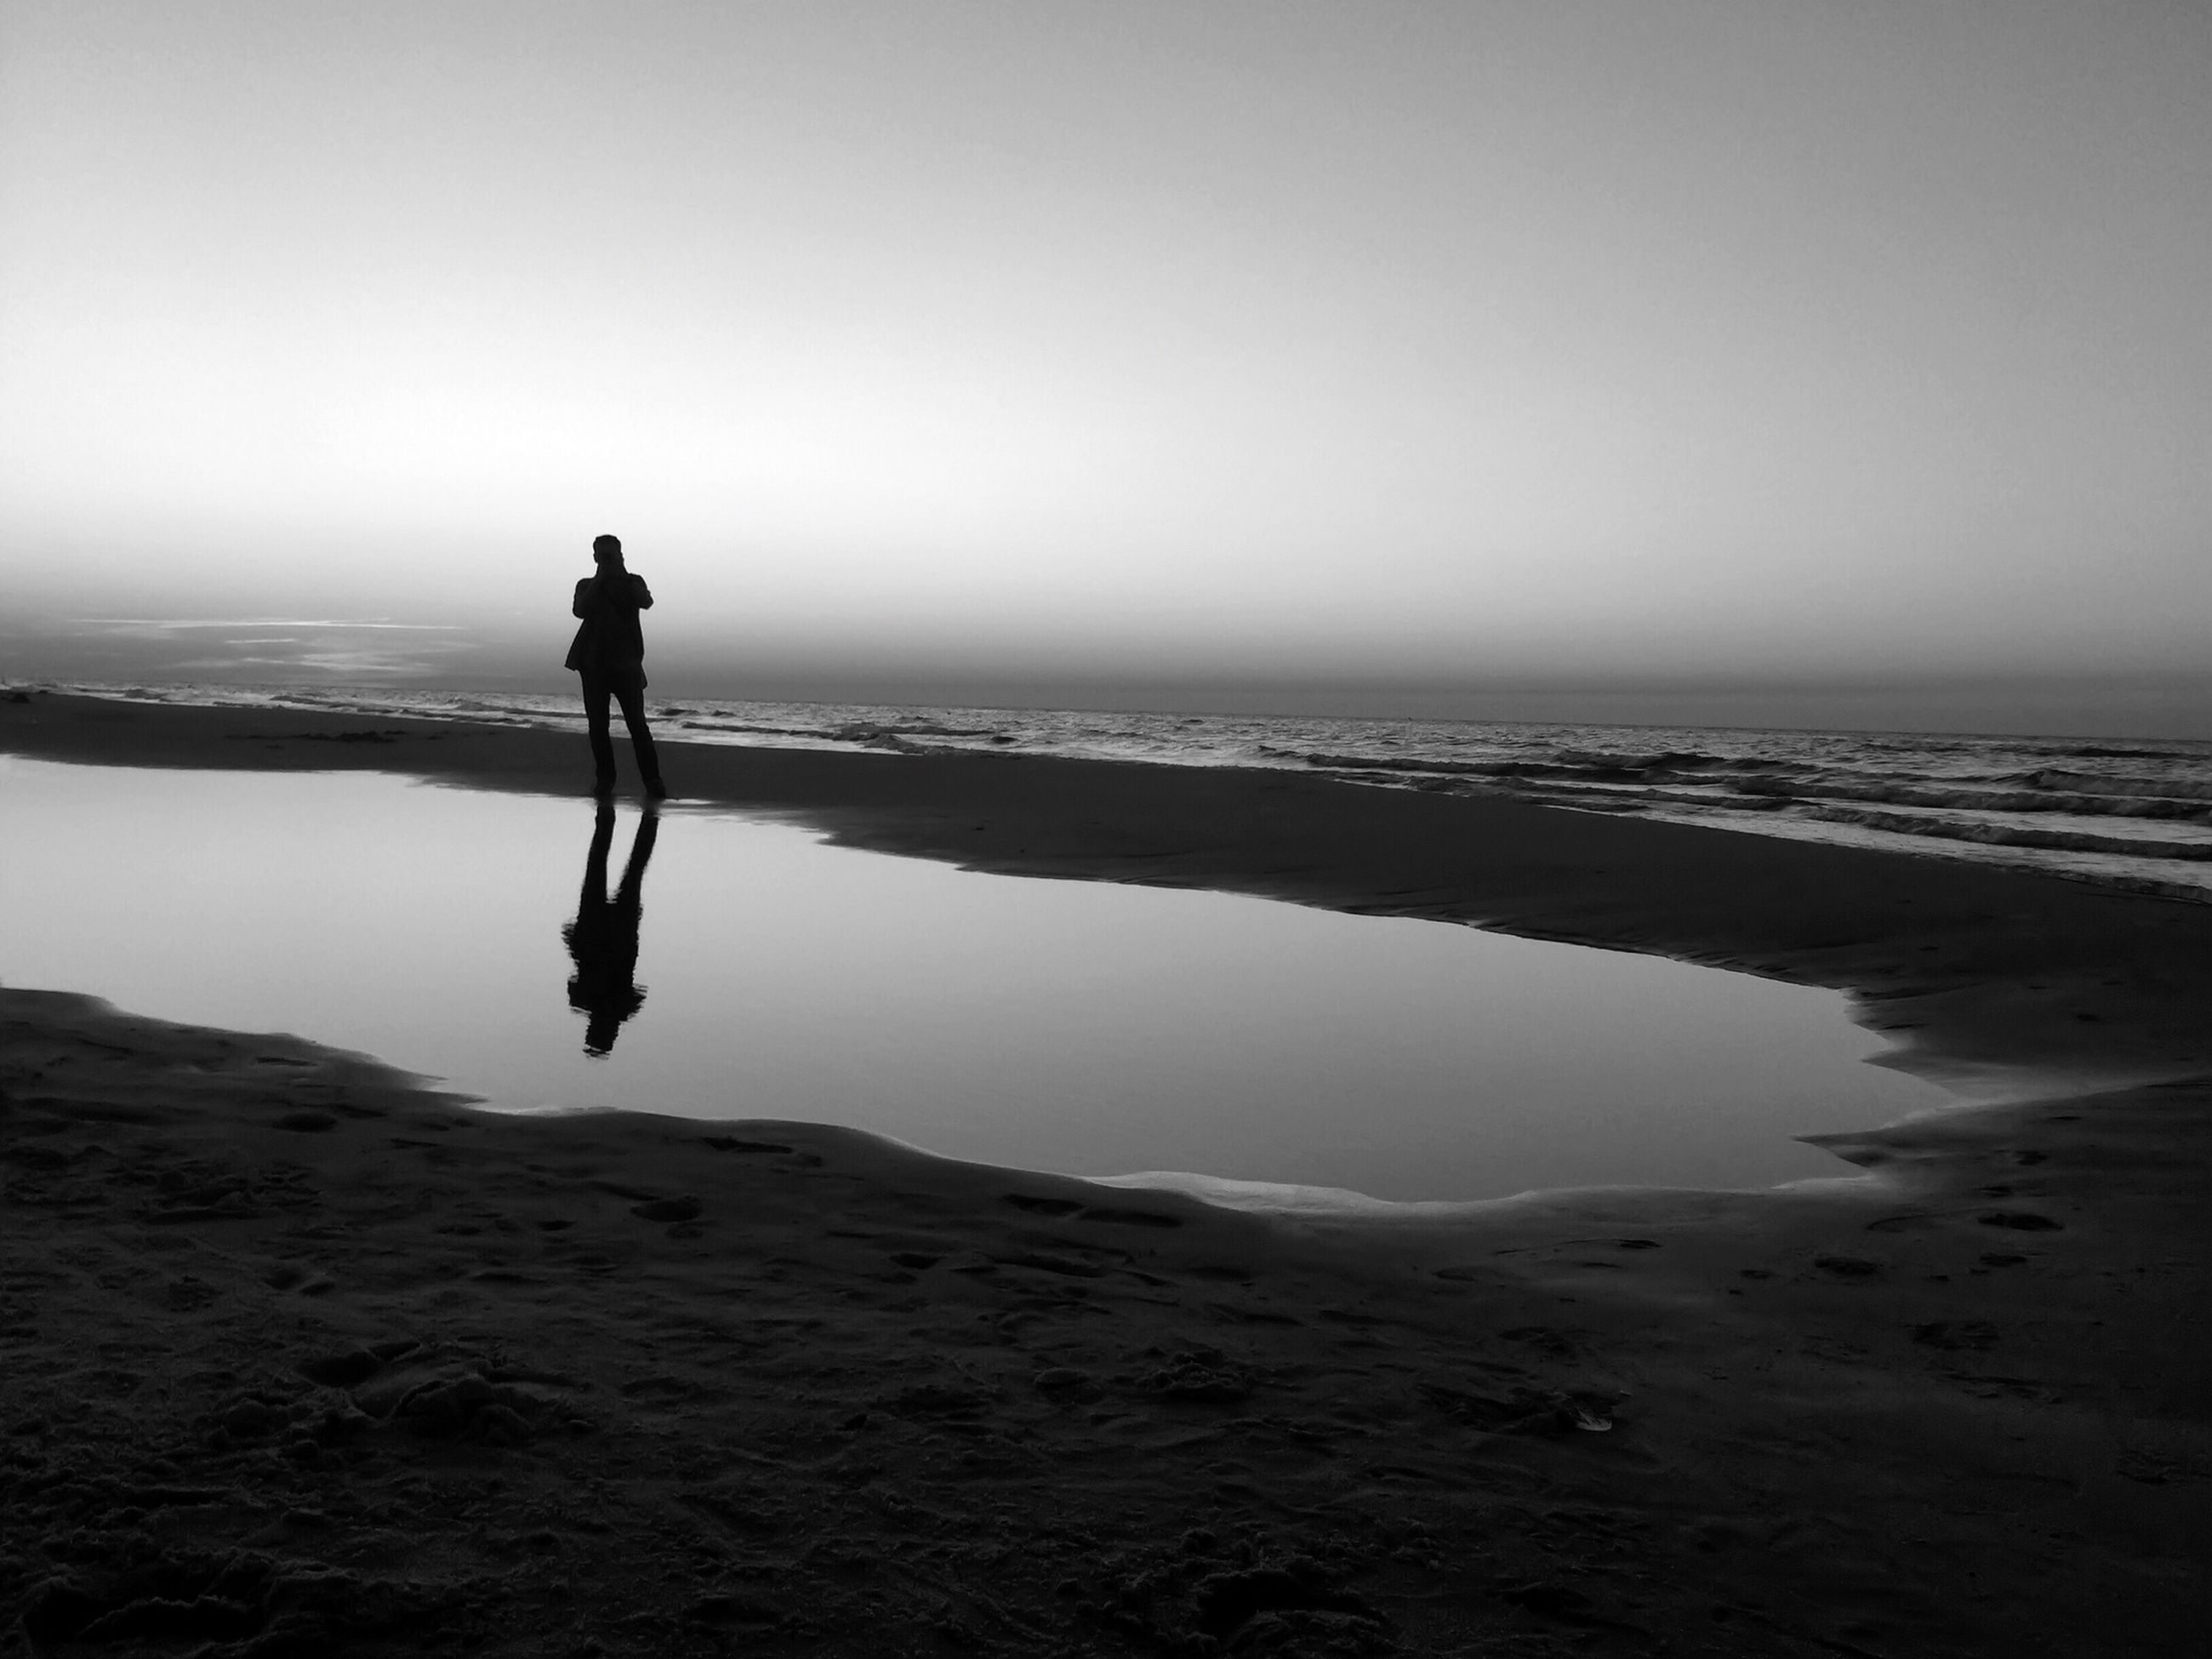 sea, beach, horizon over water, full length, water, shore, sand, standing, lifestyles, leisure activity, copy space, tranquil scene, walking, tranquility, clear sky, rear view, scenics, silhouette